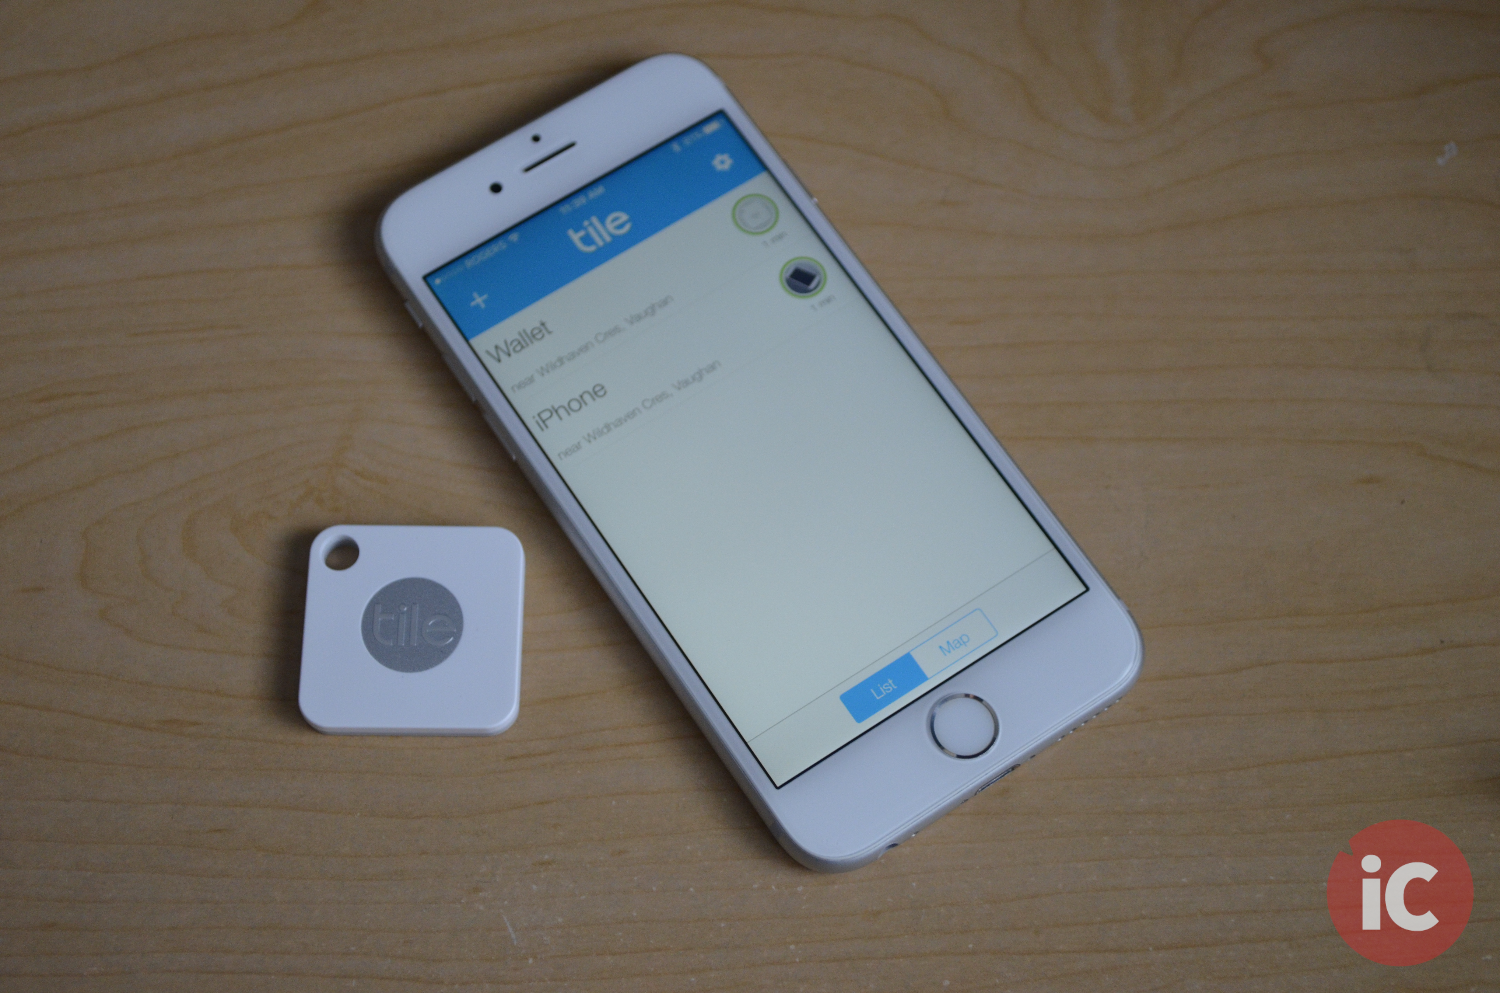 Tile Mate Review A Thin And Light Bluetooth Tracker